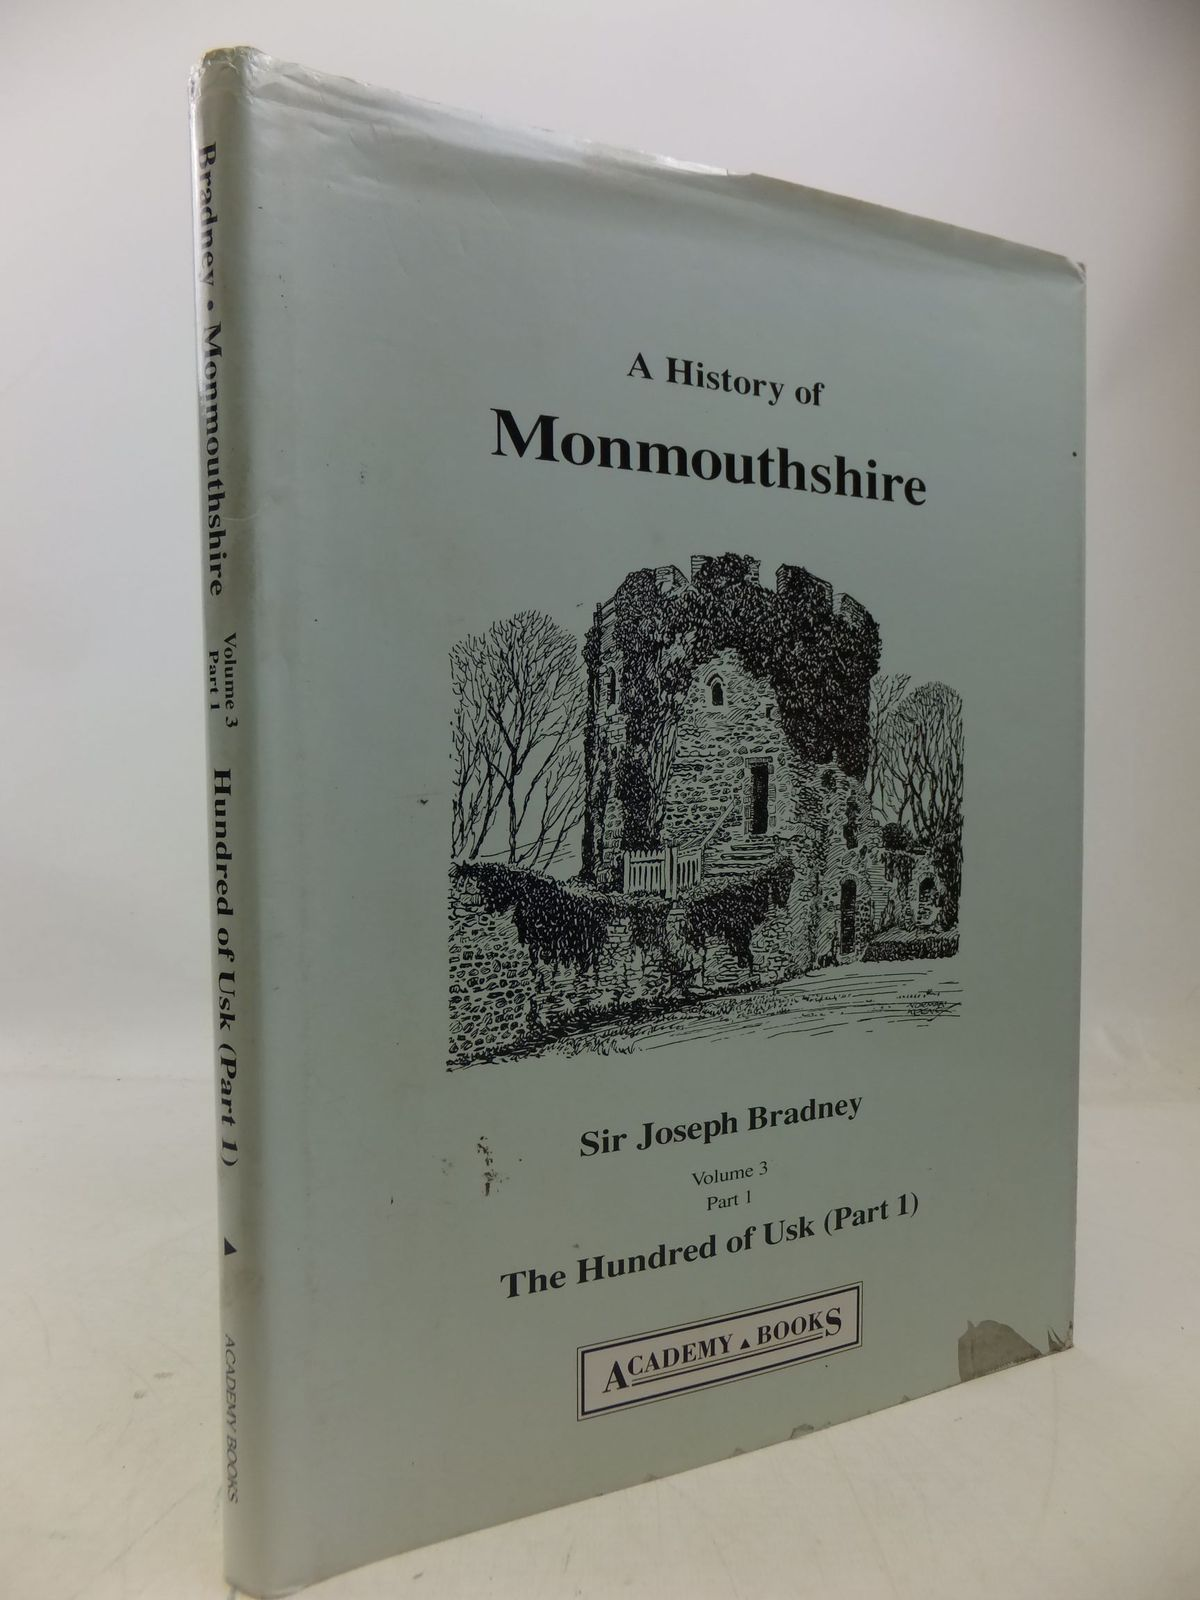 Photo of A HISTORY OF MONMOUTHSHIRE THE HUNDRED OF USK (PART 1) written by Bradney, Joseph published by Academy Books (STOCK CODE: 1709408)  for sale by Stella & Rose's Books